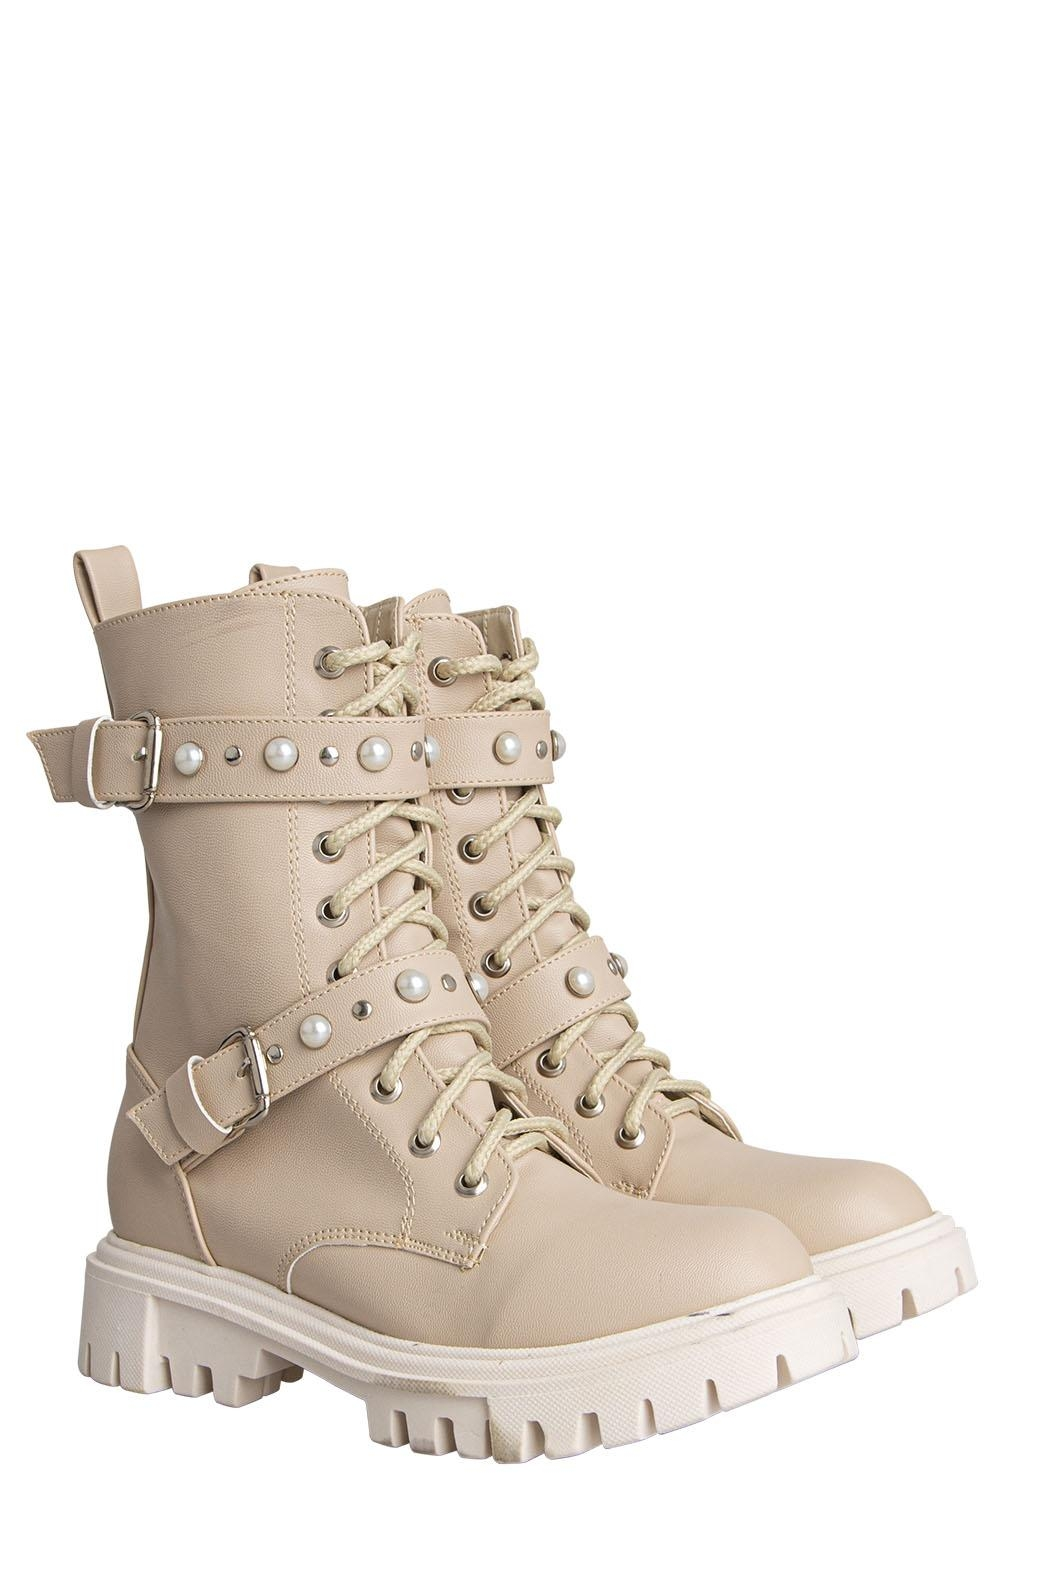 Morkas Shoes Combat Boot Nude - Main Image